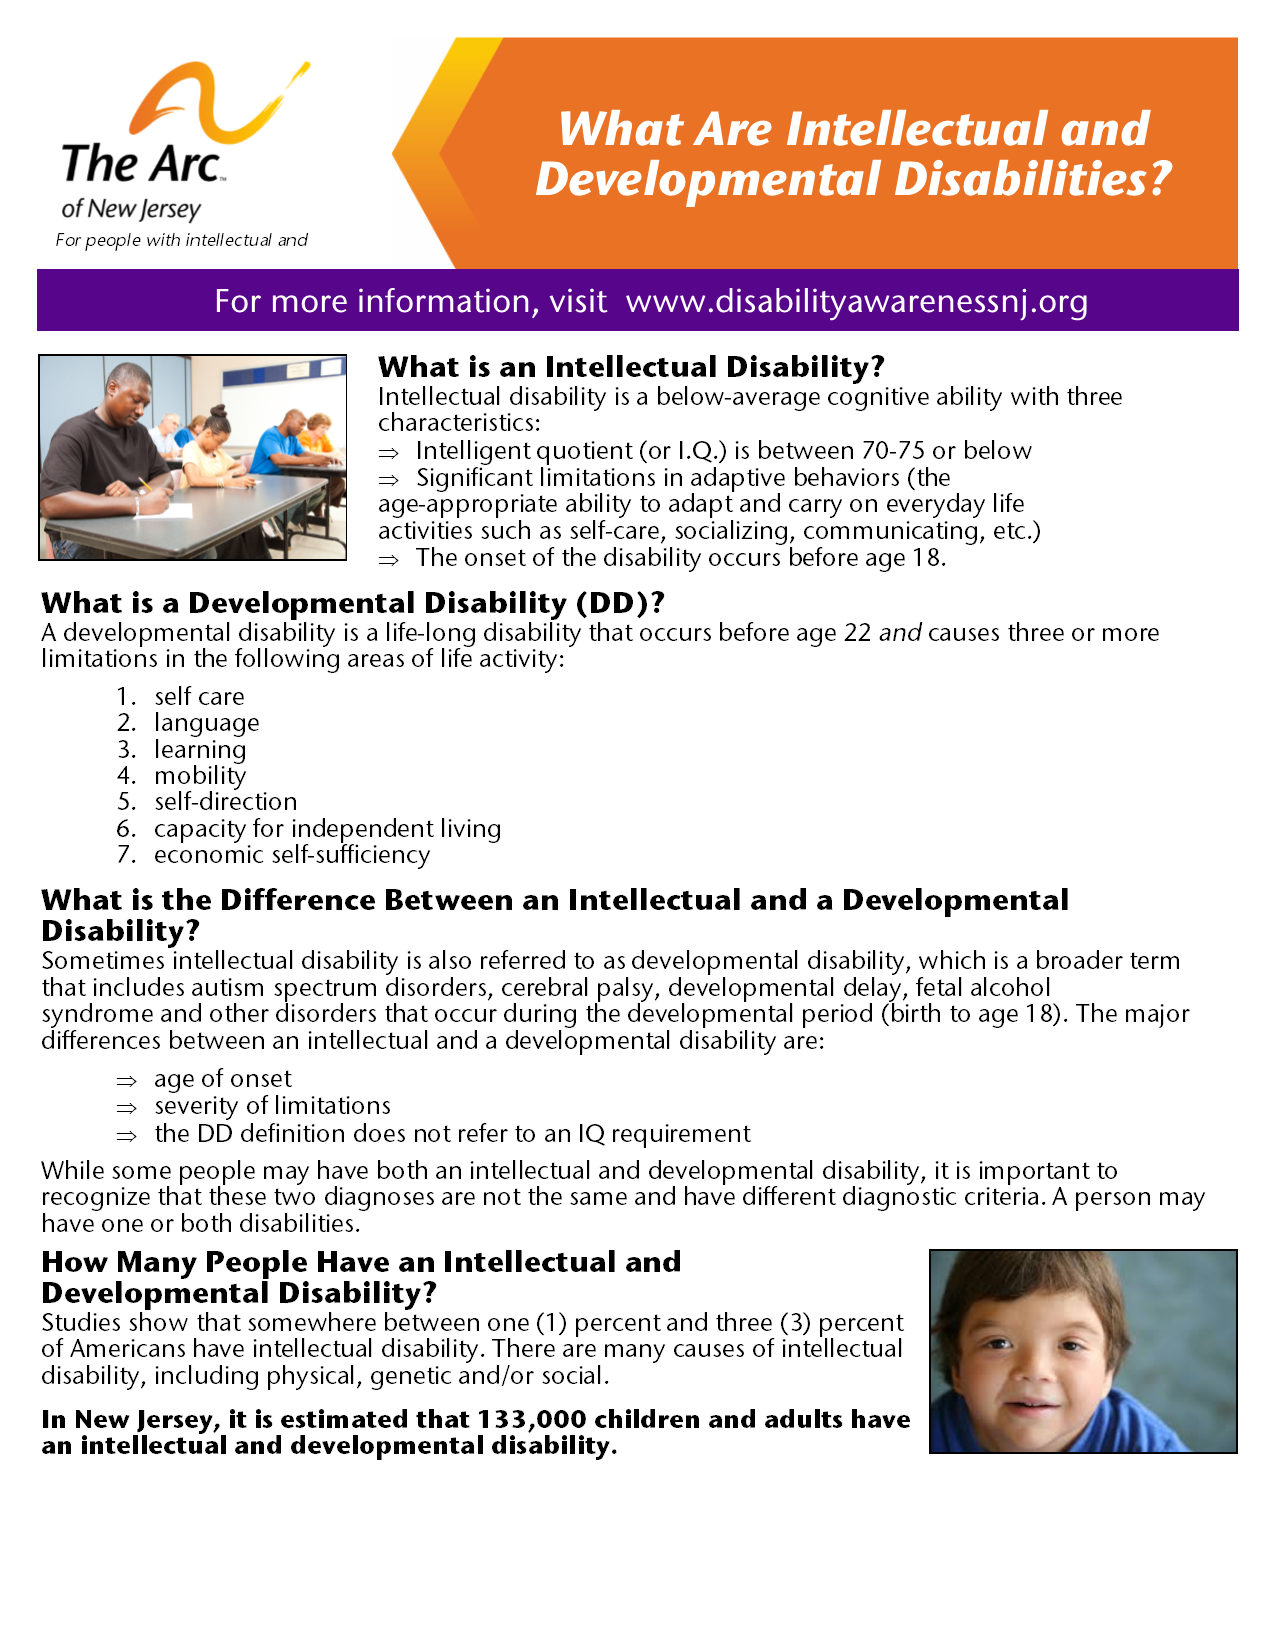 What Are Intellectual and Developmental Disabilities?